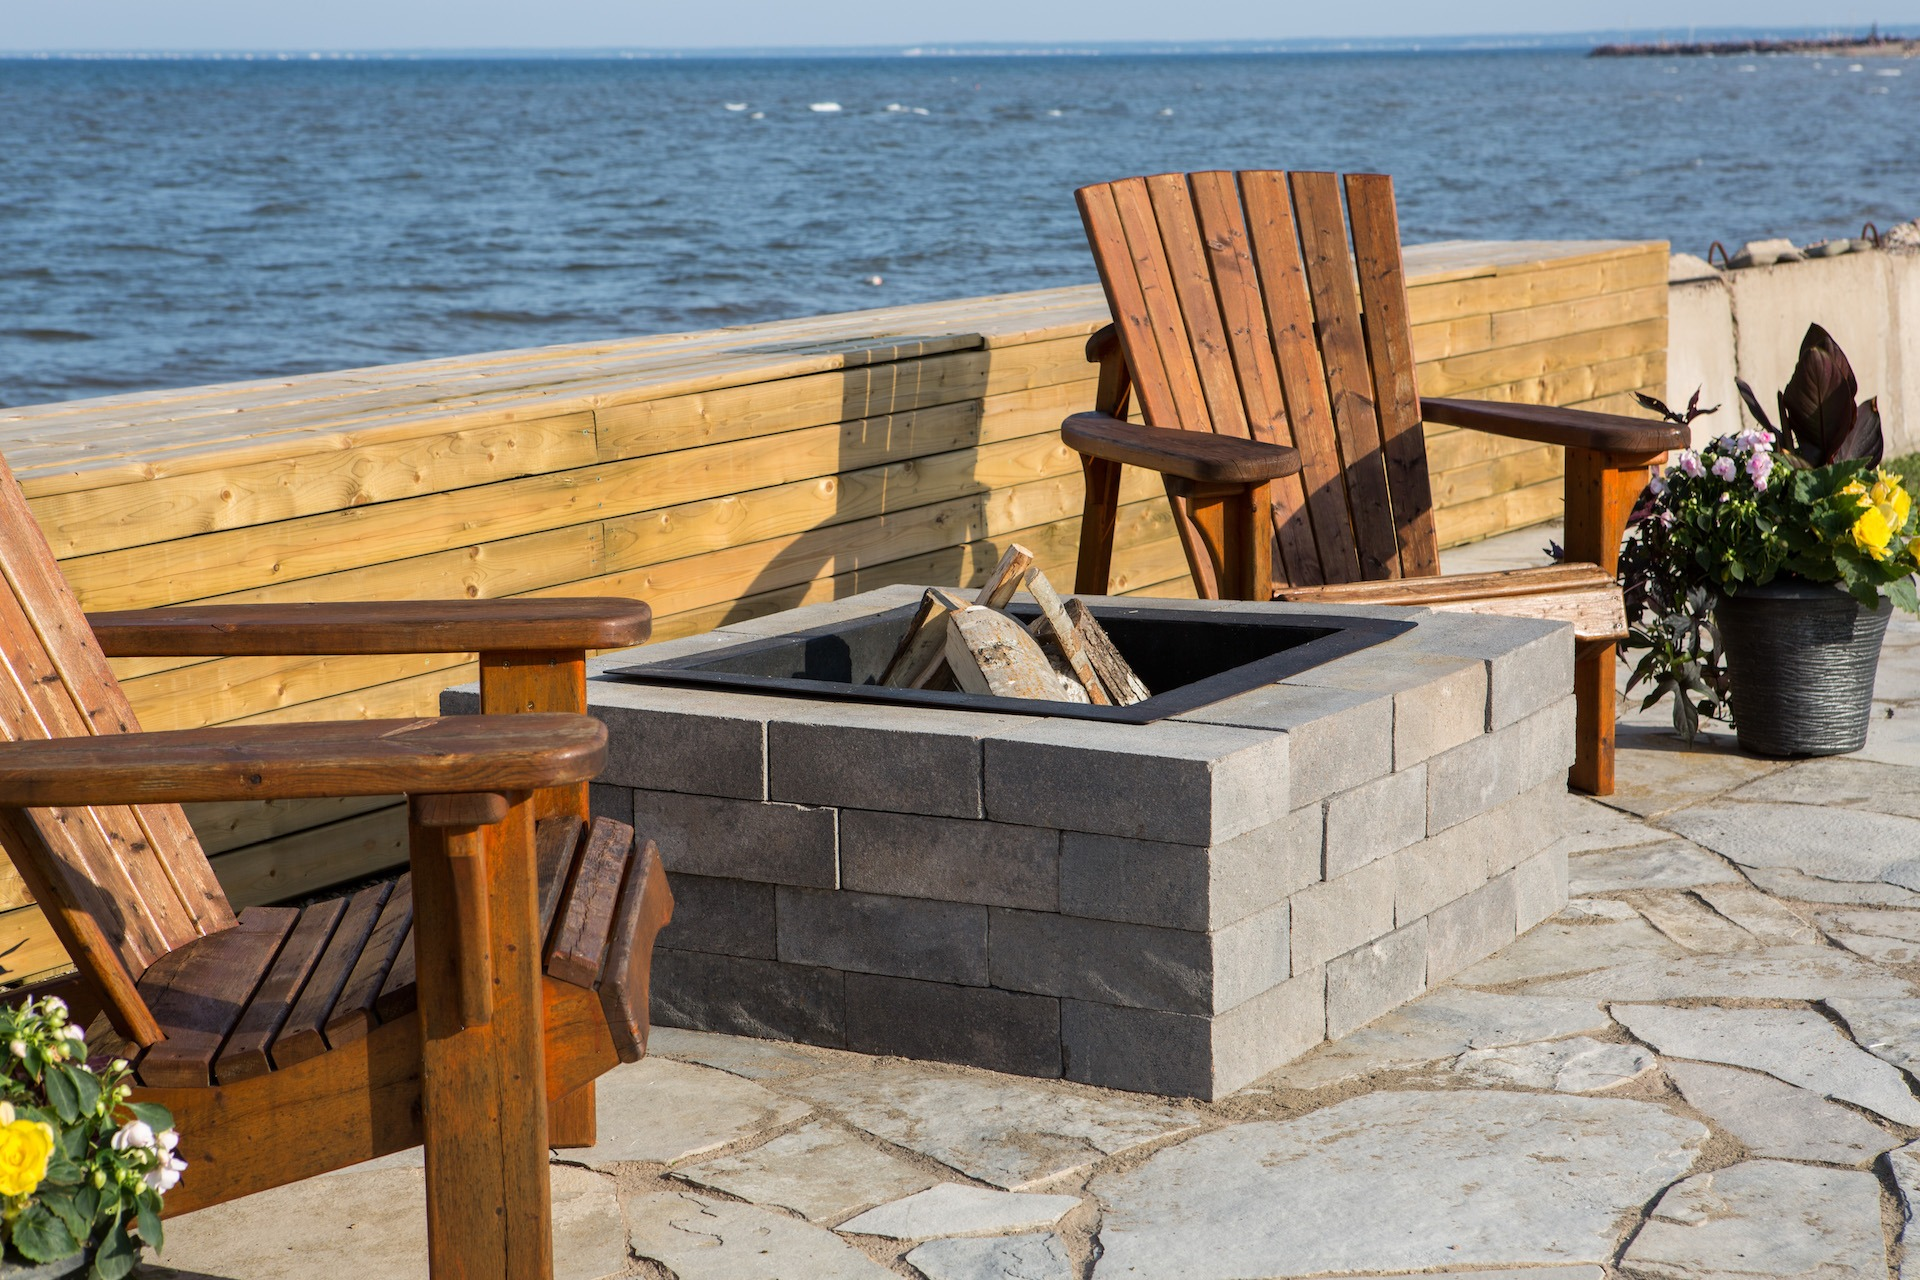 Ocean side backyard setting featuring Shaw Brick's Classic Weathered WallStone proucts around firepit